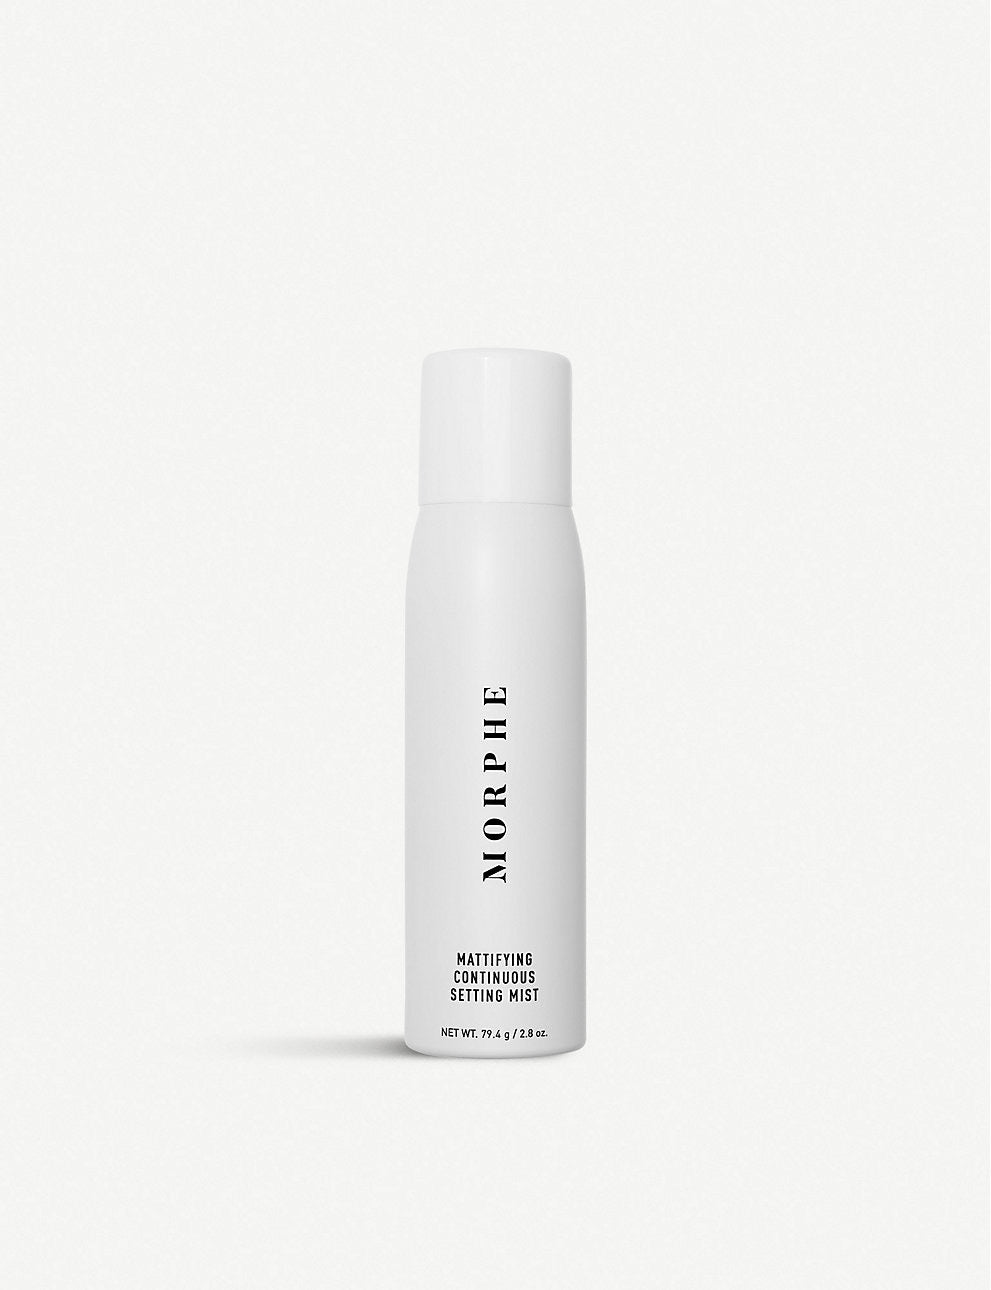 Morphe Mattifying Continuous Setting Spray